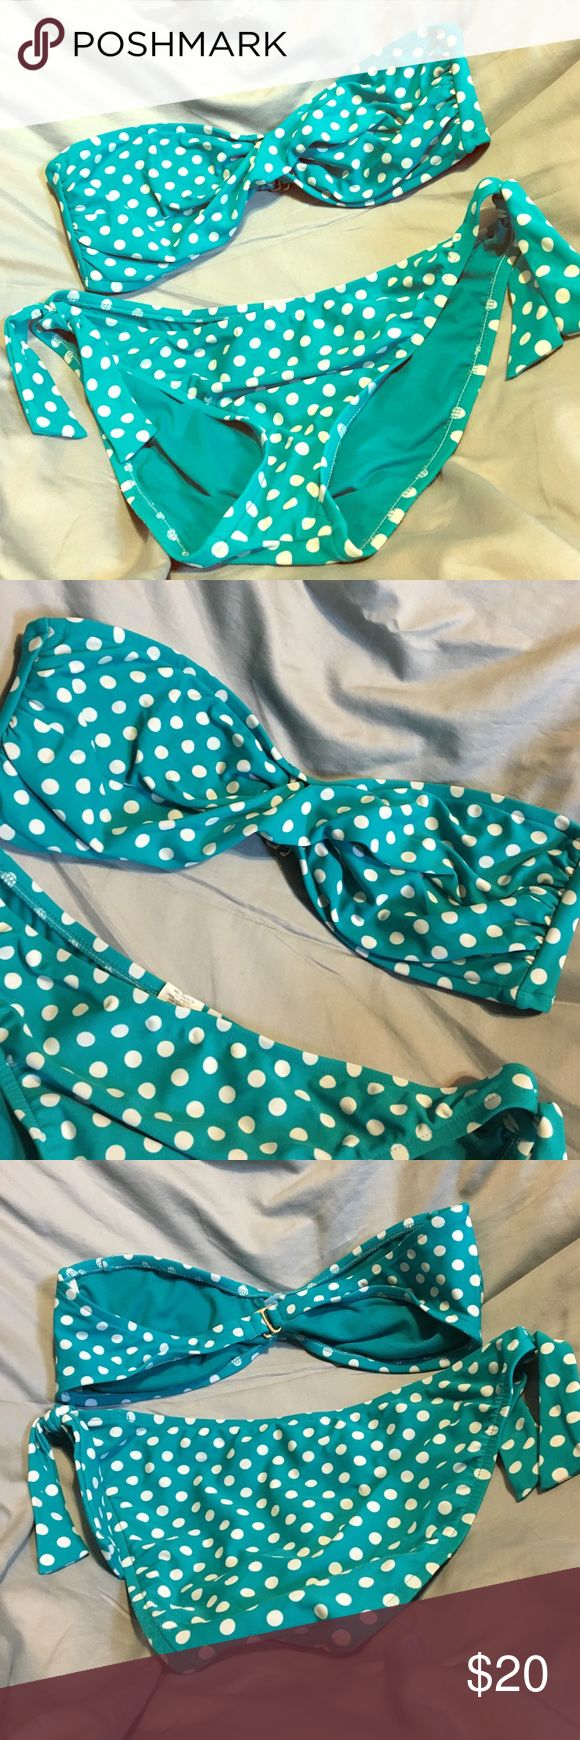 Polka Dot Bikini Teal blue and white polka dot bikini. Bandeau top. Regular bottoms. Tie on the side for decoration. Comes with strap for the top. Does not have padding in the top. Both top and bottom are XL Mossimo Supply Co. Swim Bikinis